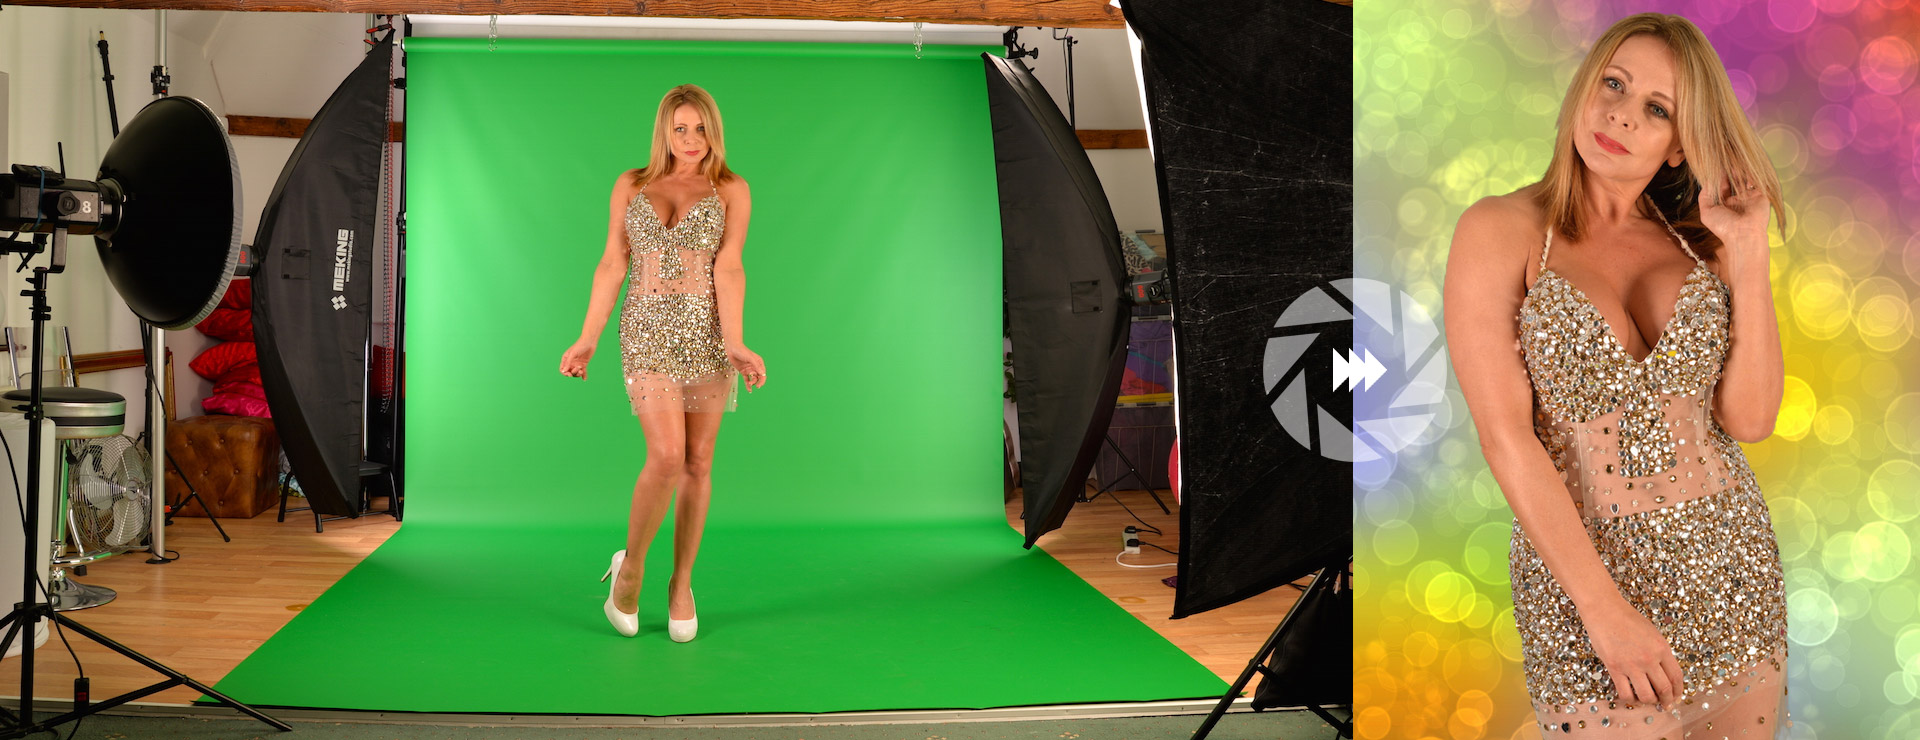 Green Screen Before and After